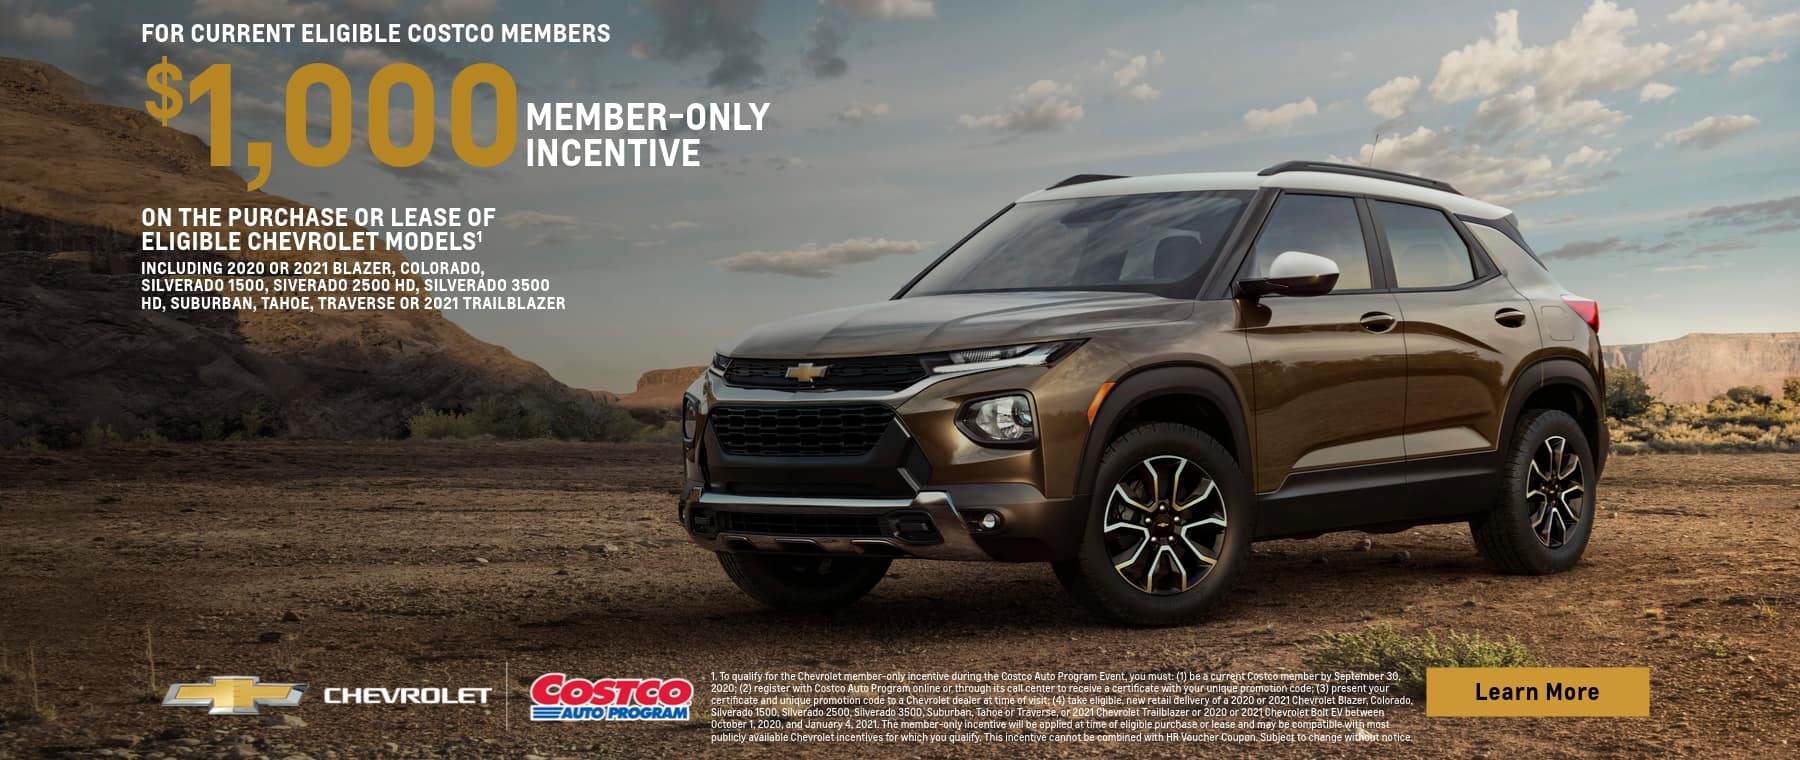 New Chevy Trailblazer Costco Rebate In Oklahoma